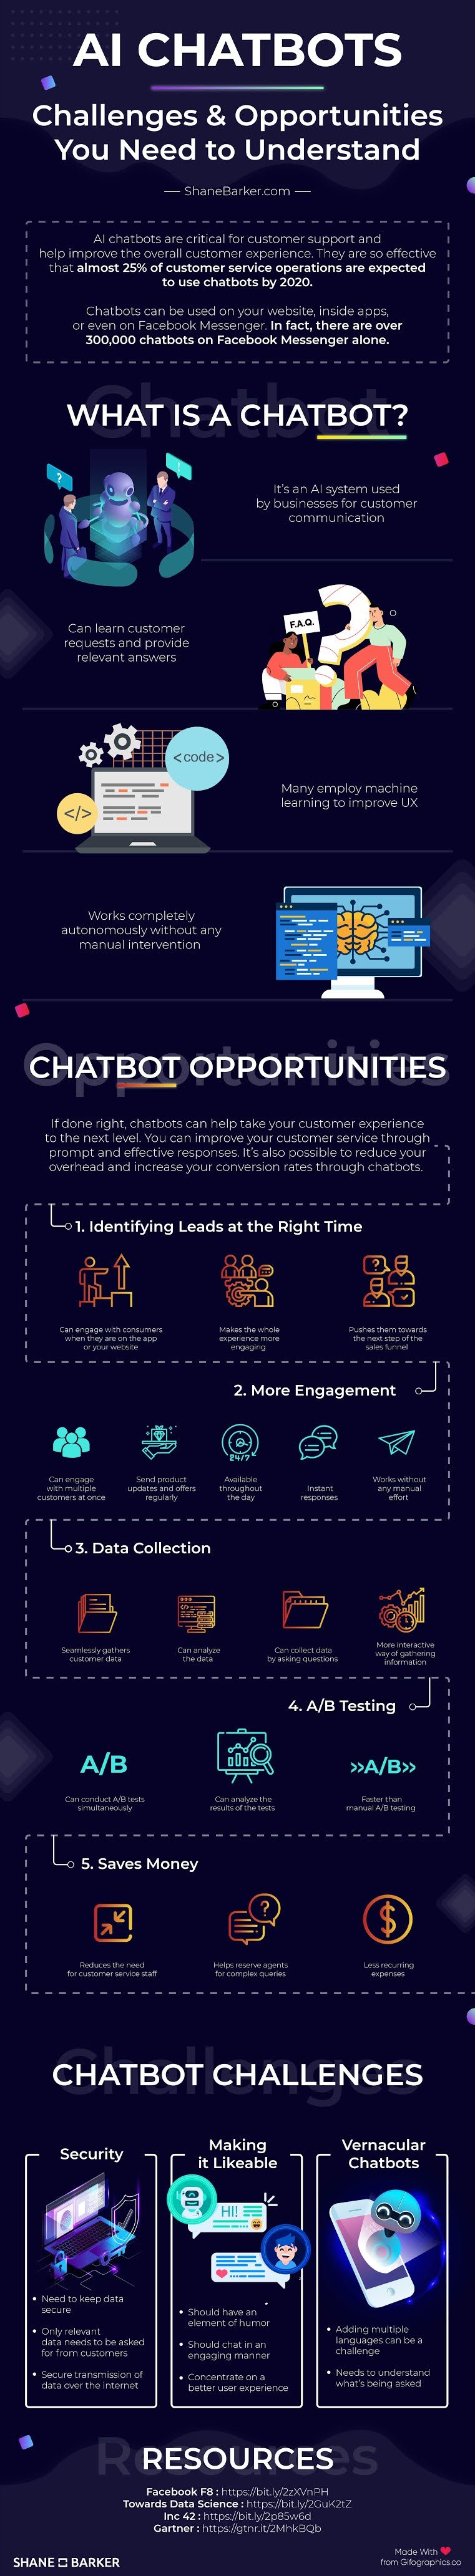 Top Challenges and Benefits of AI Chatbots #infographic